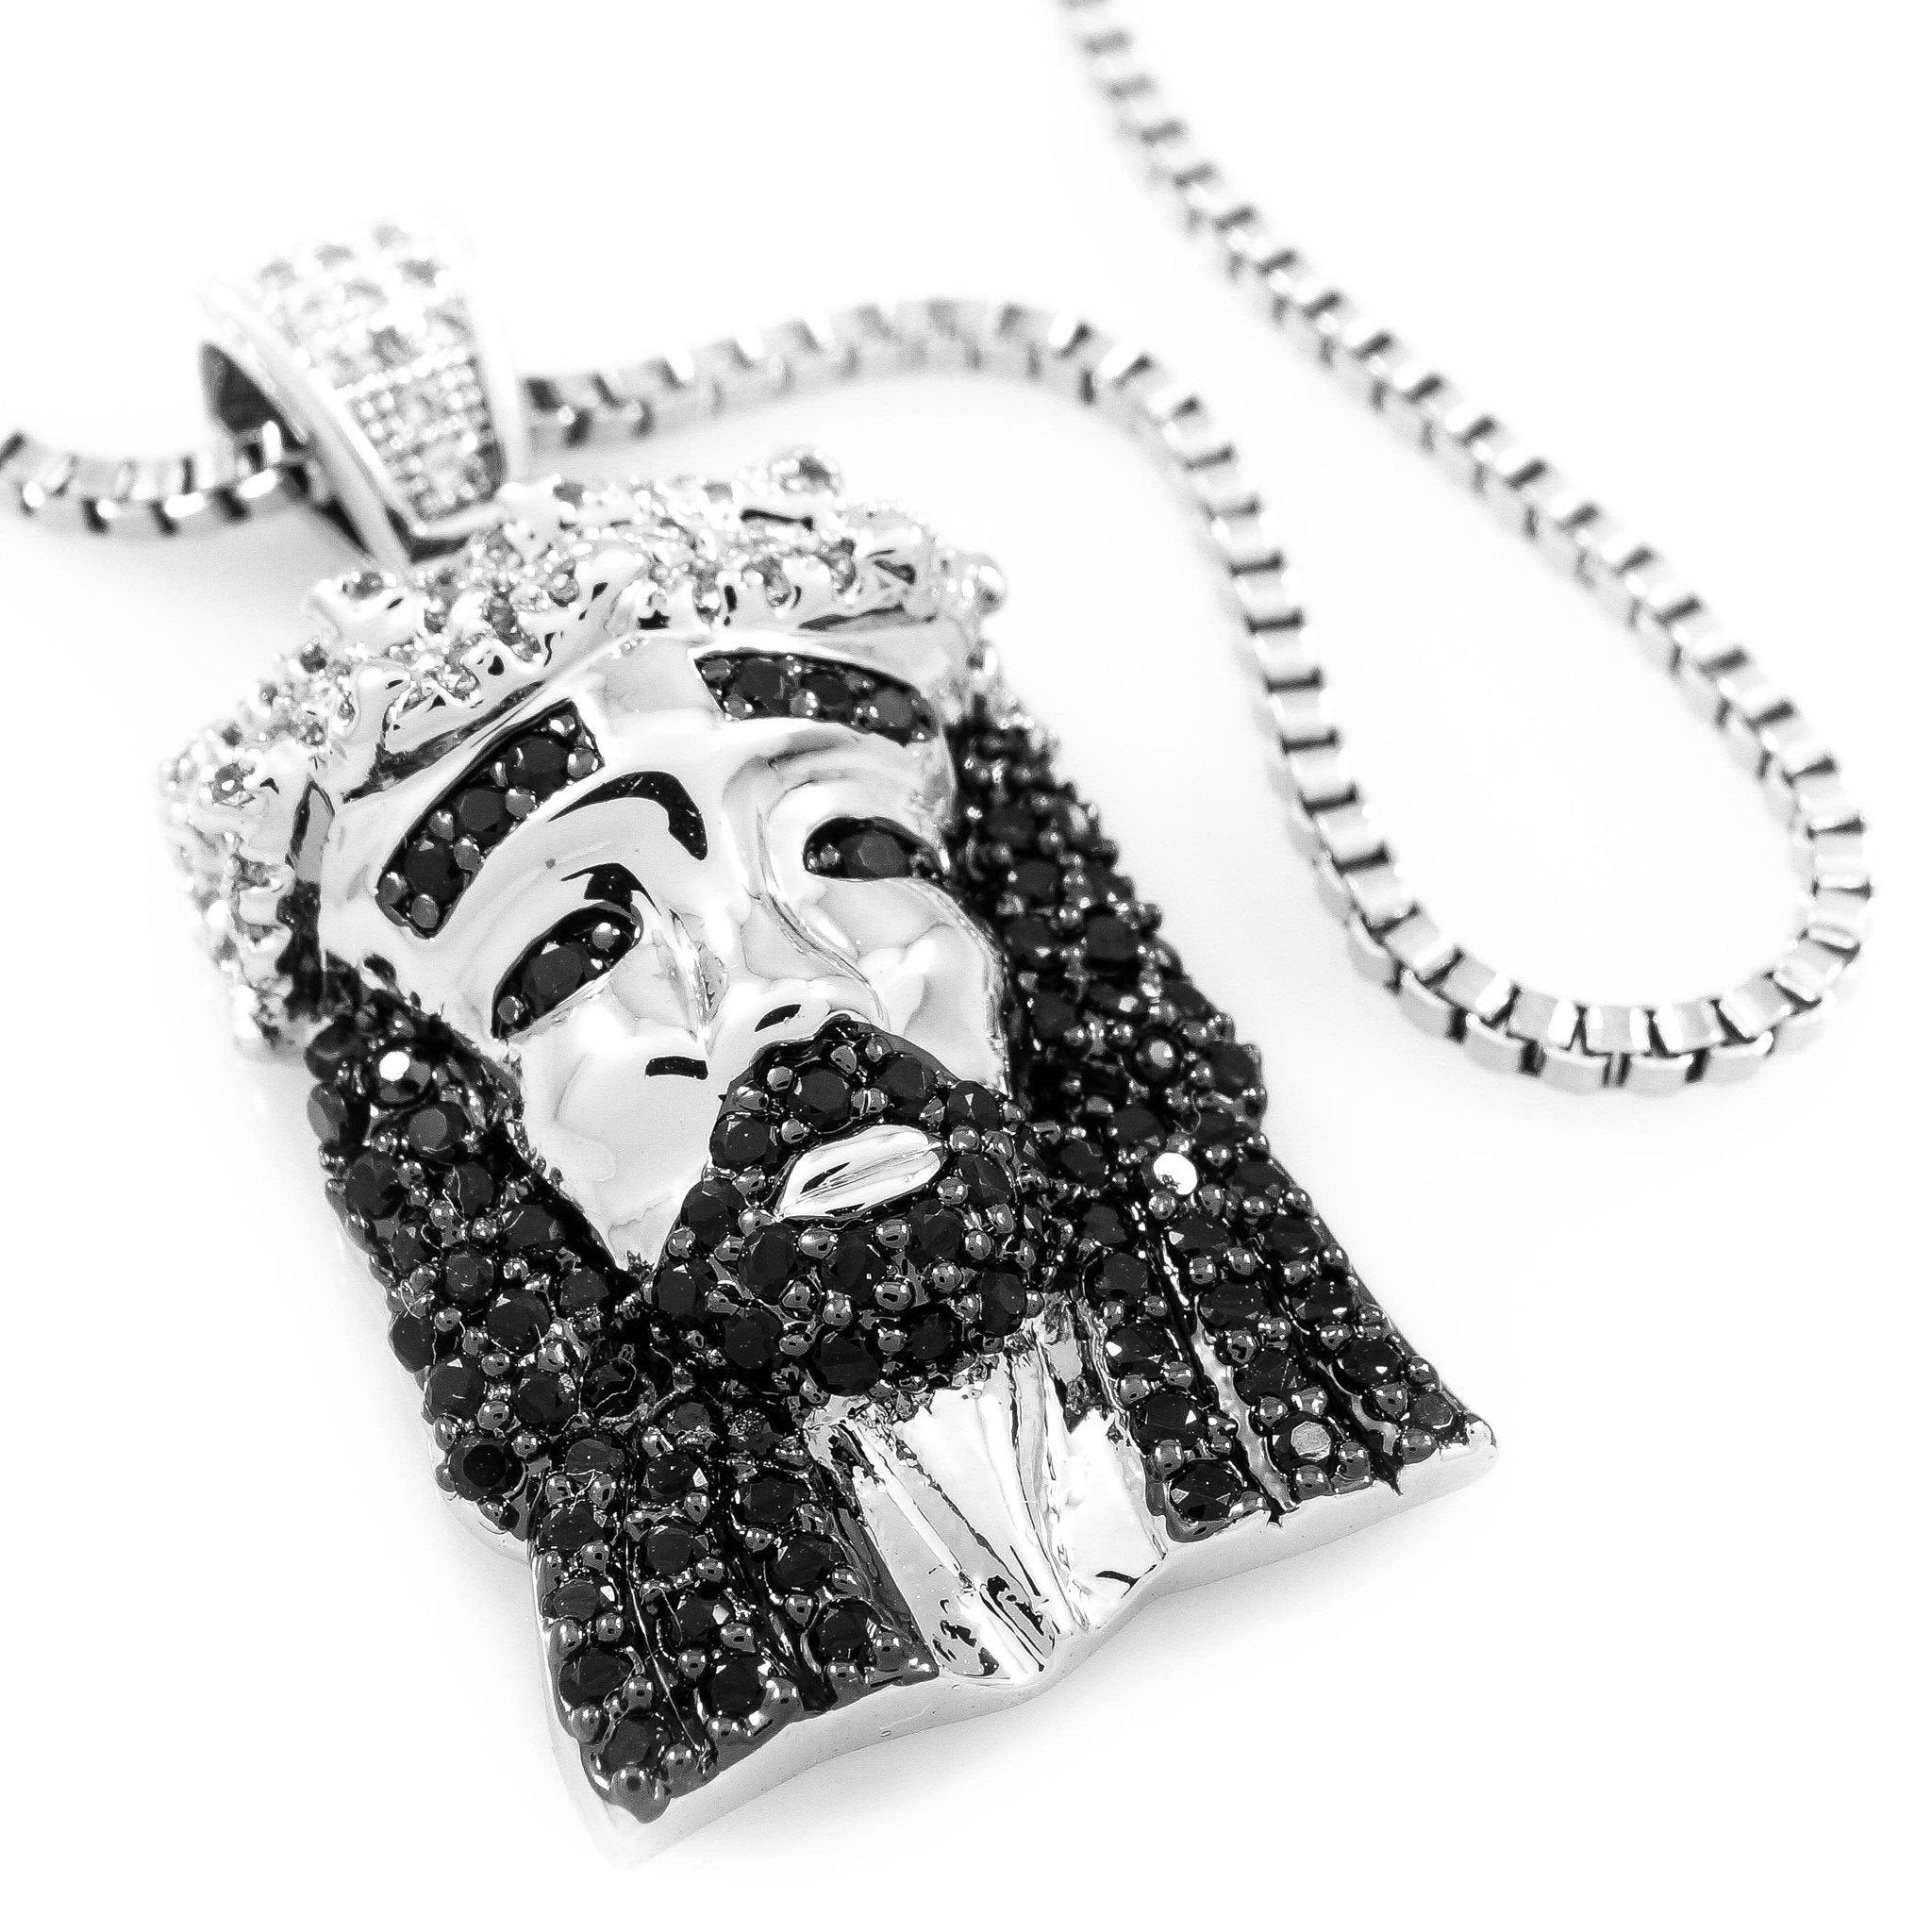 18k White Gold/Black CZ Iced Mini Jesus Piece 1 with Box Chain